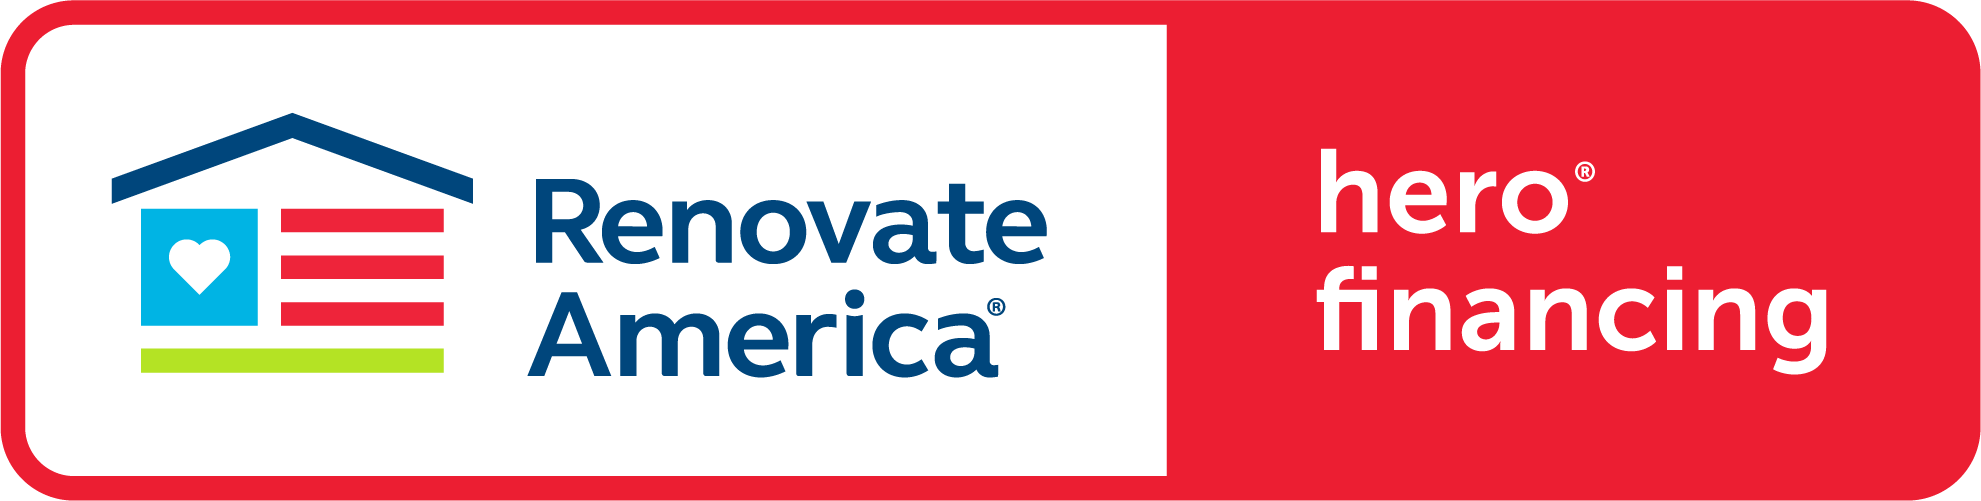 Renovate America hero financing